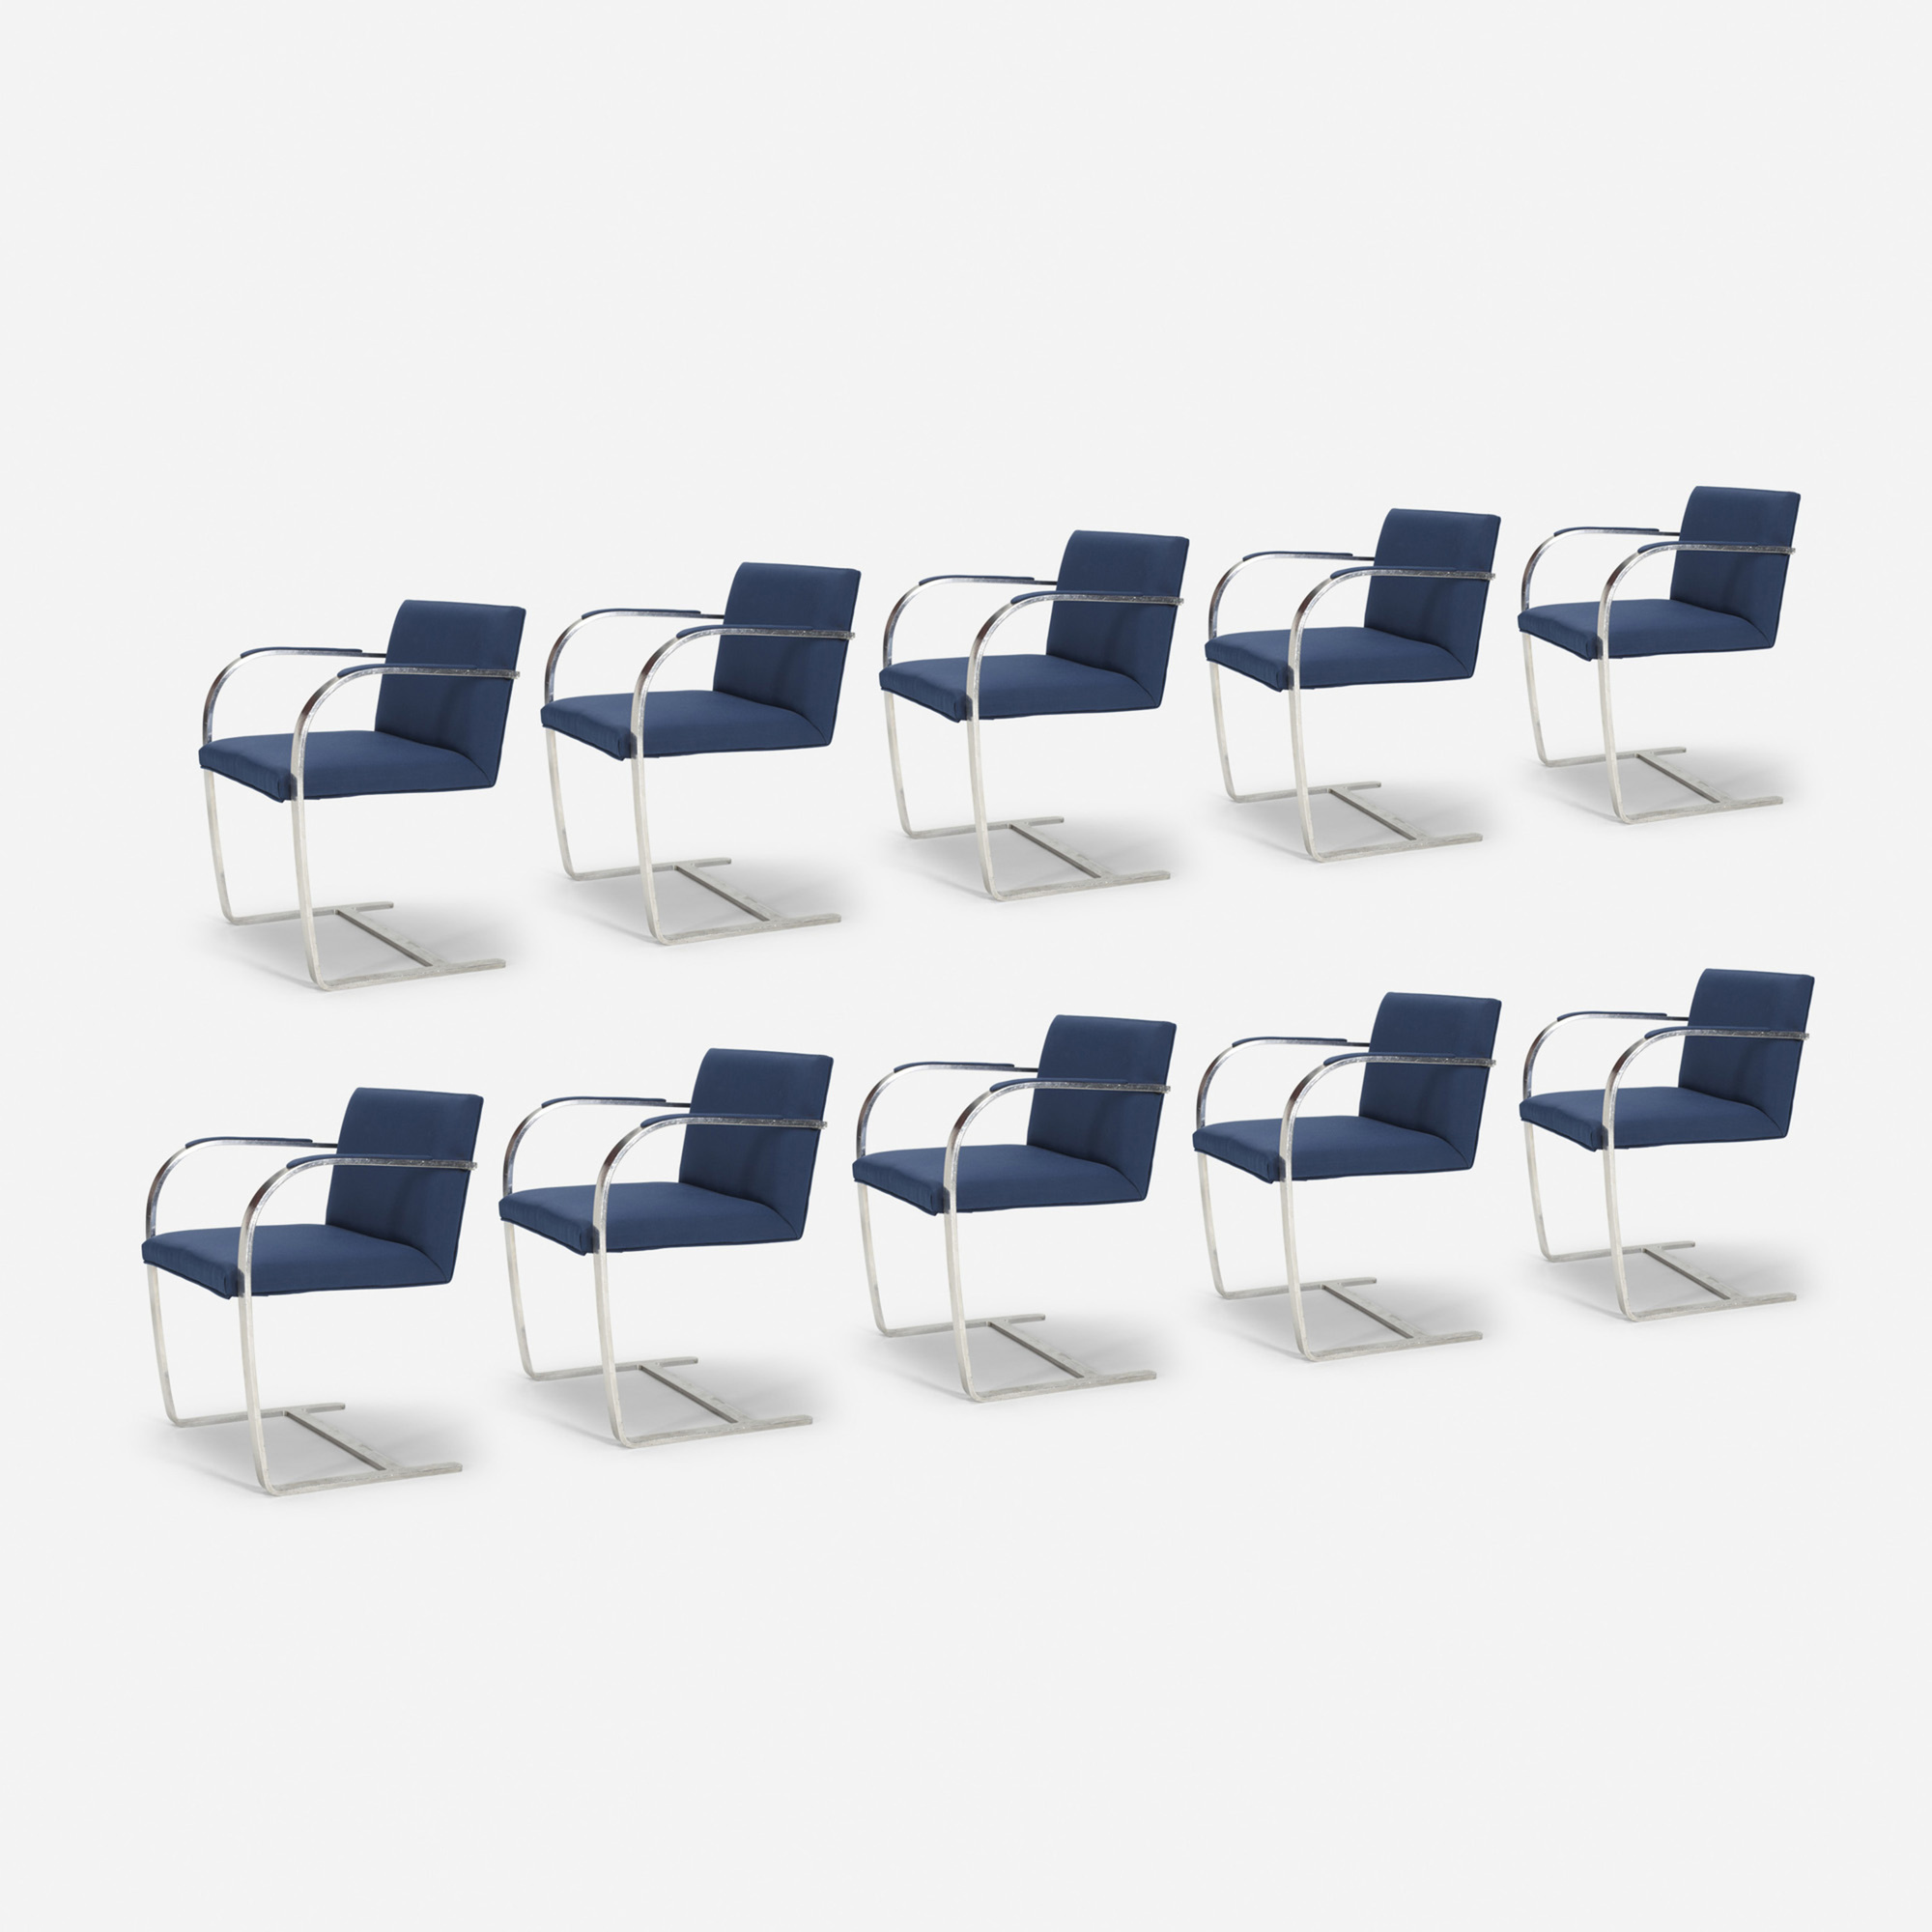 503: Ludwig Mies van der Rohe / Brno chairs from The Four Seasons, set of ten (1 of 1)